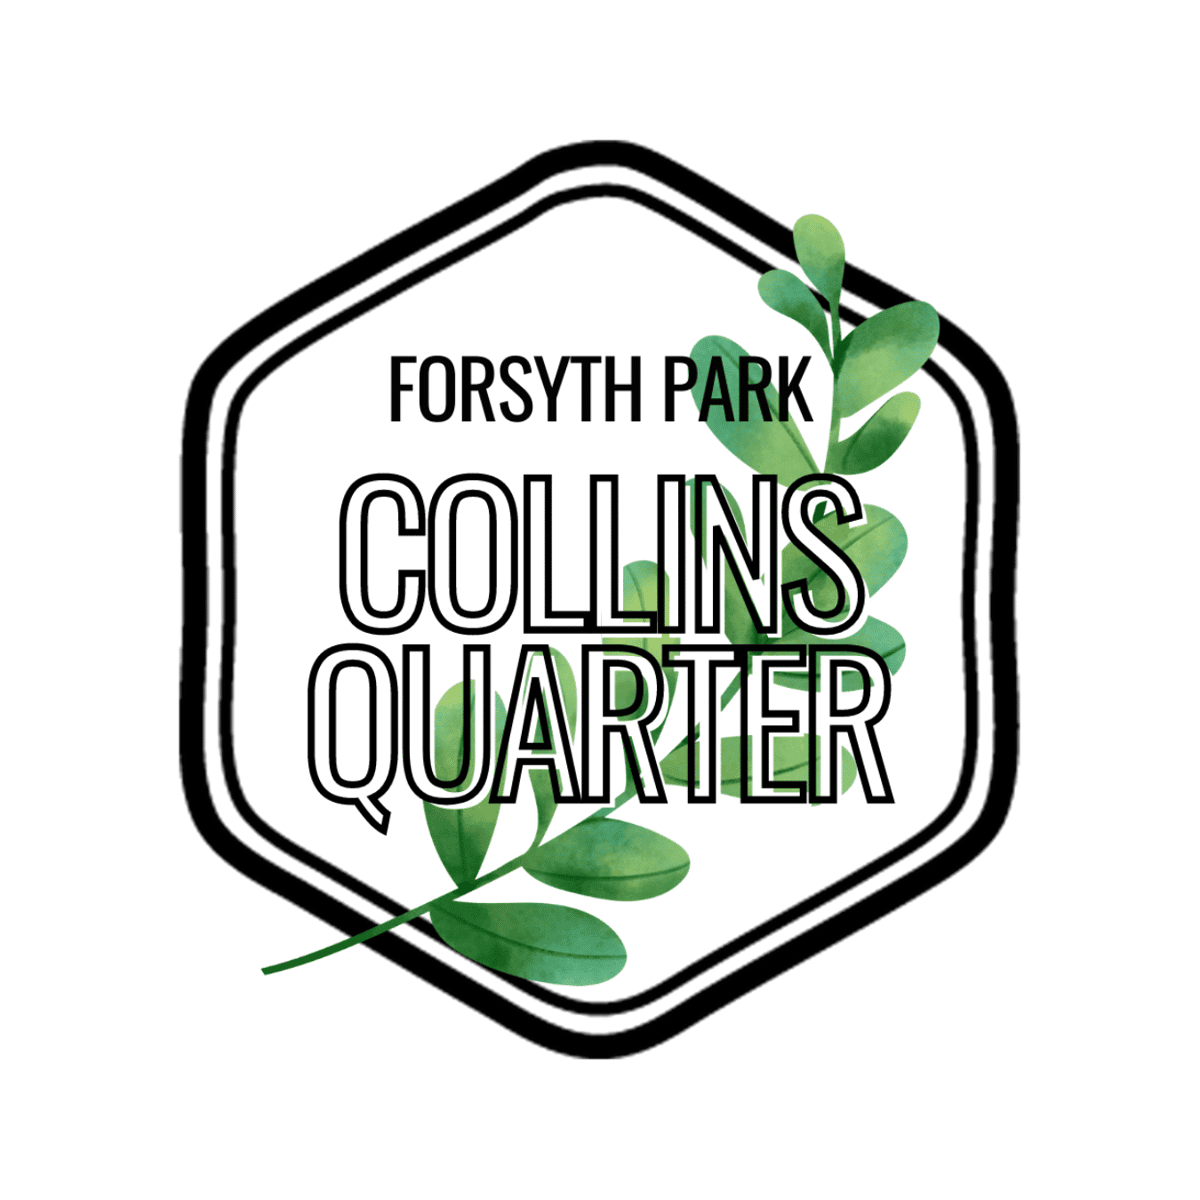 Collins Quarter at Forsyth Park